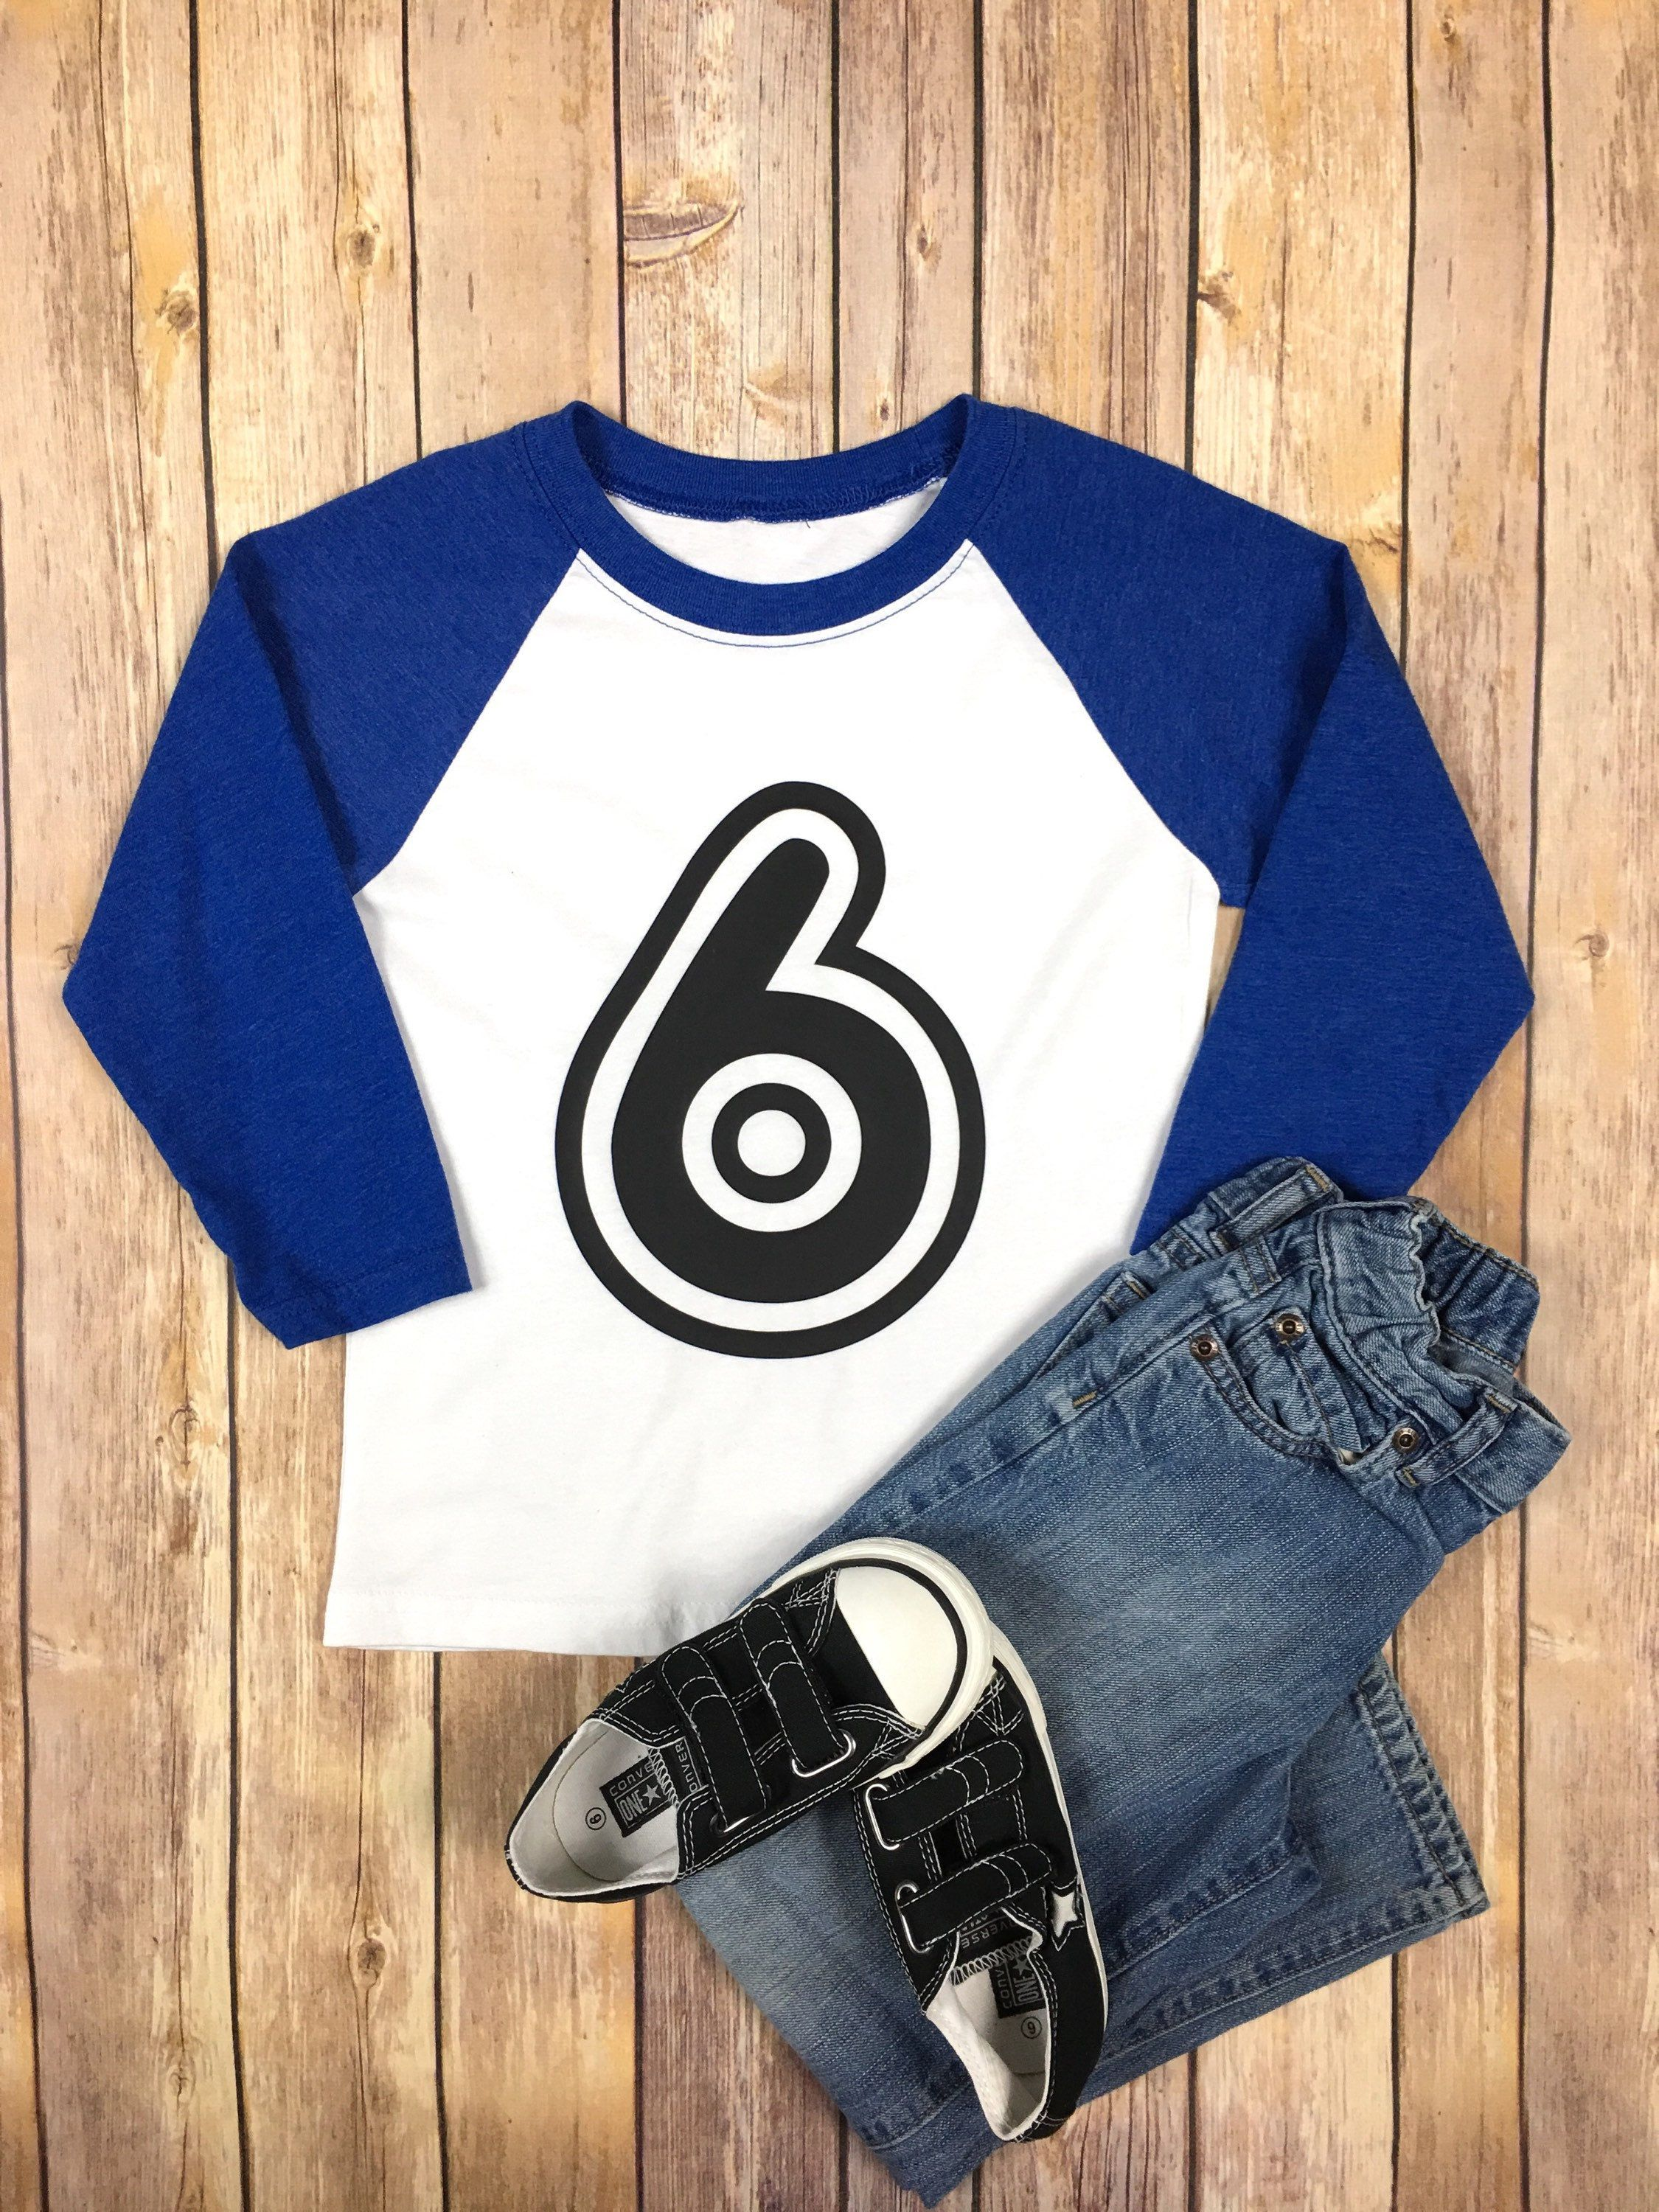 Birthday Shirt Number 6th Kids Raglan 7th Outfit 8th Party By SaxSews On